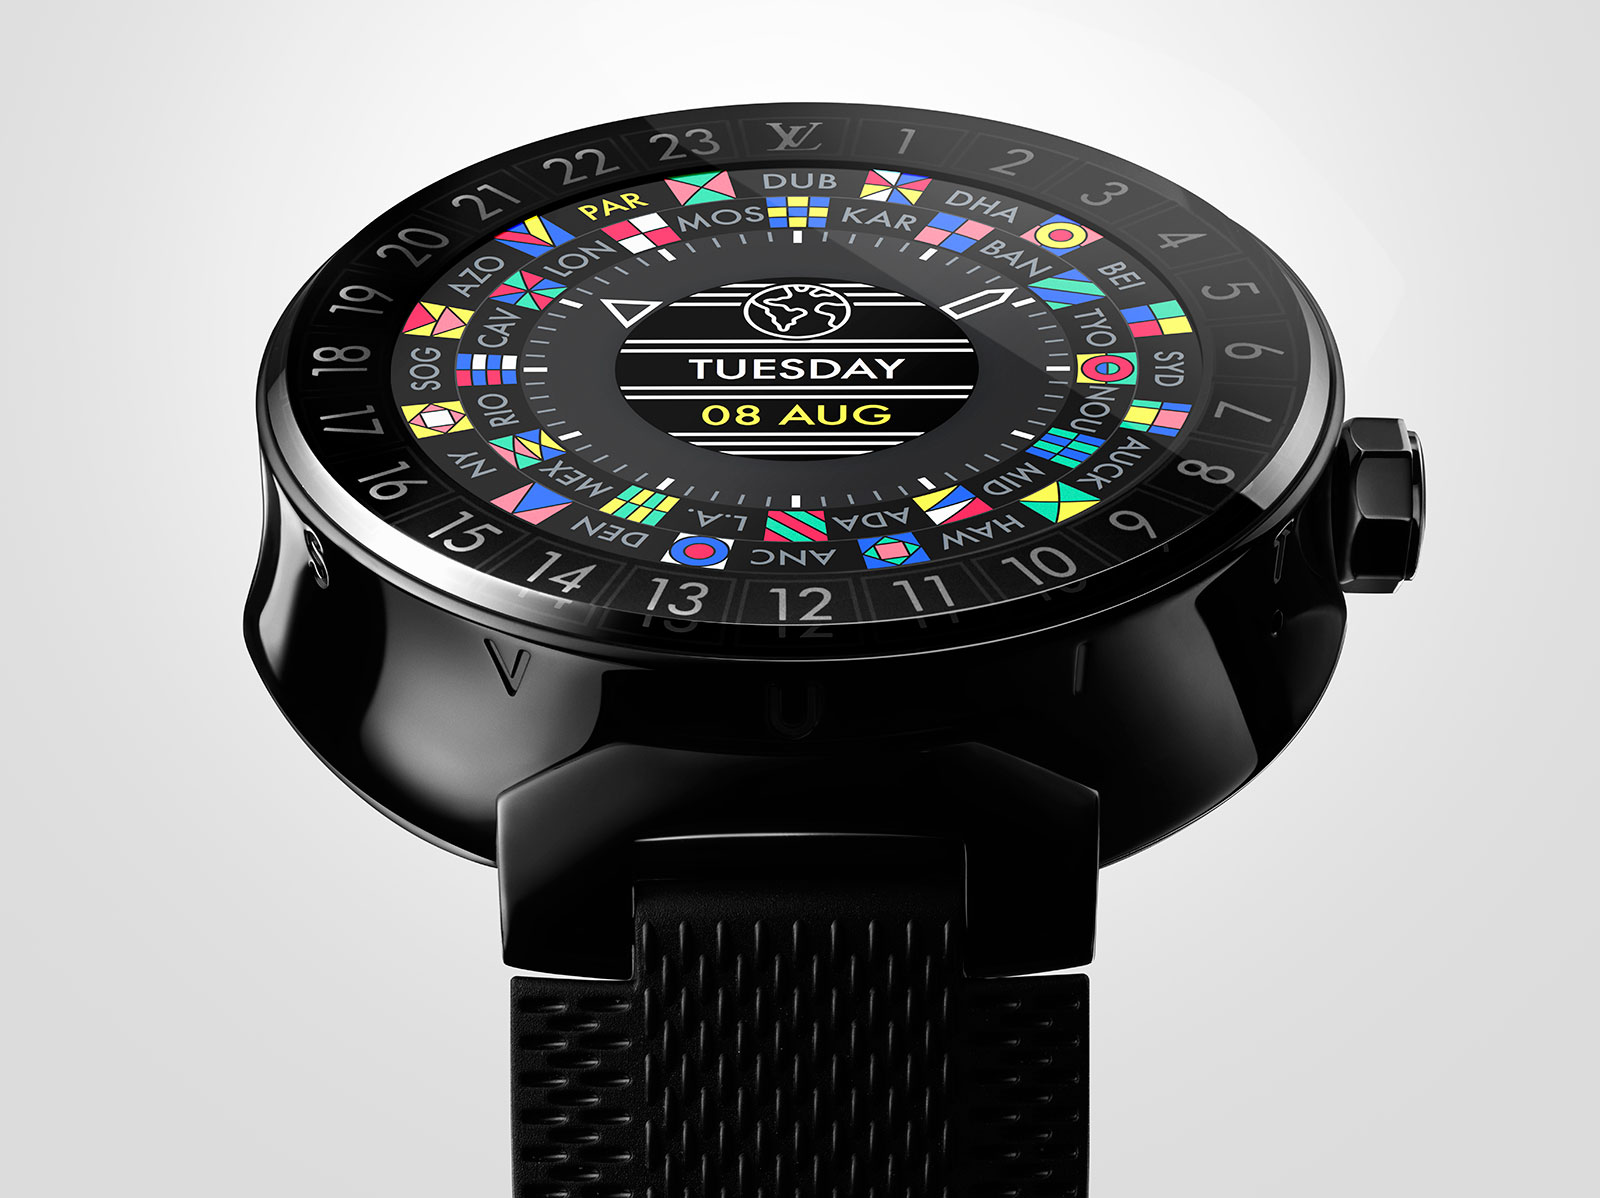 Louis-Vuitton-Tambour-Horizon-Smartwatch-1.jpg